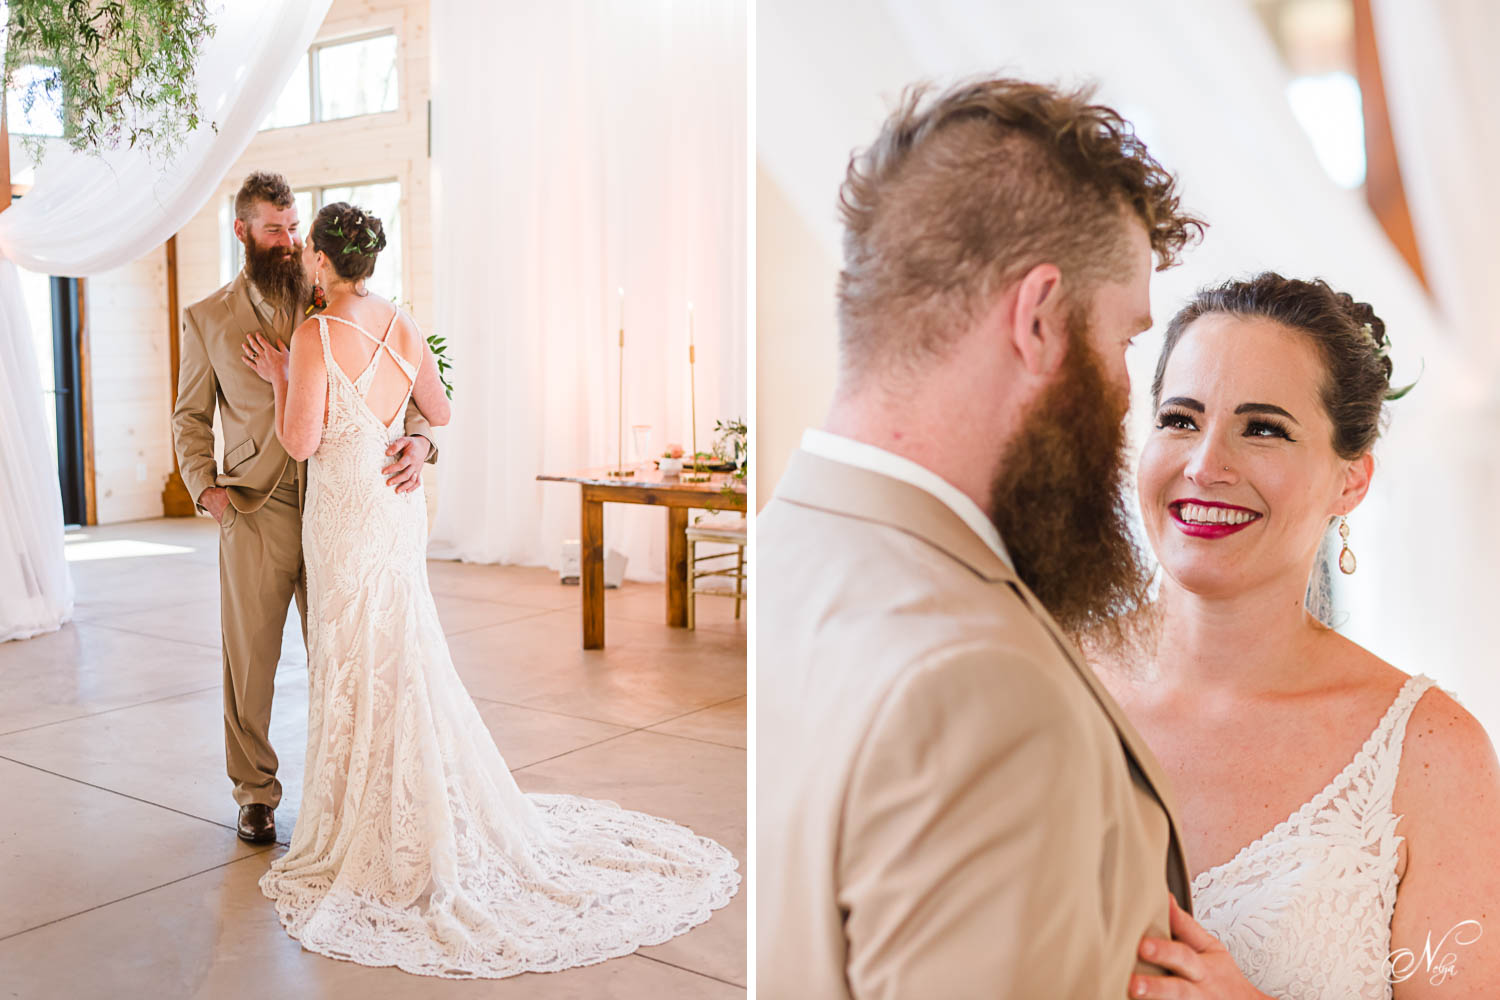 bride in lace wedding dress with lace train and bride's emotional smile at the First Look